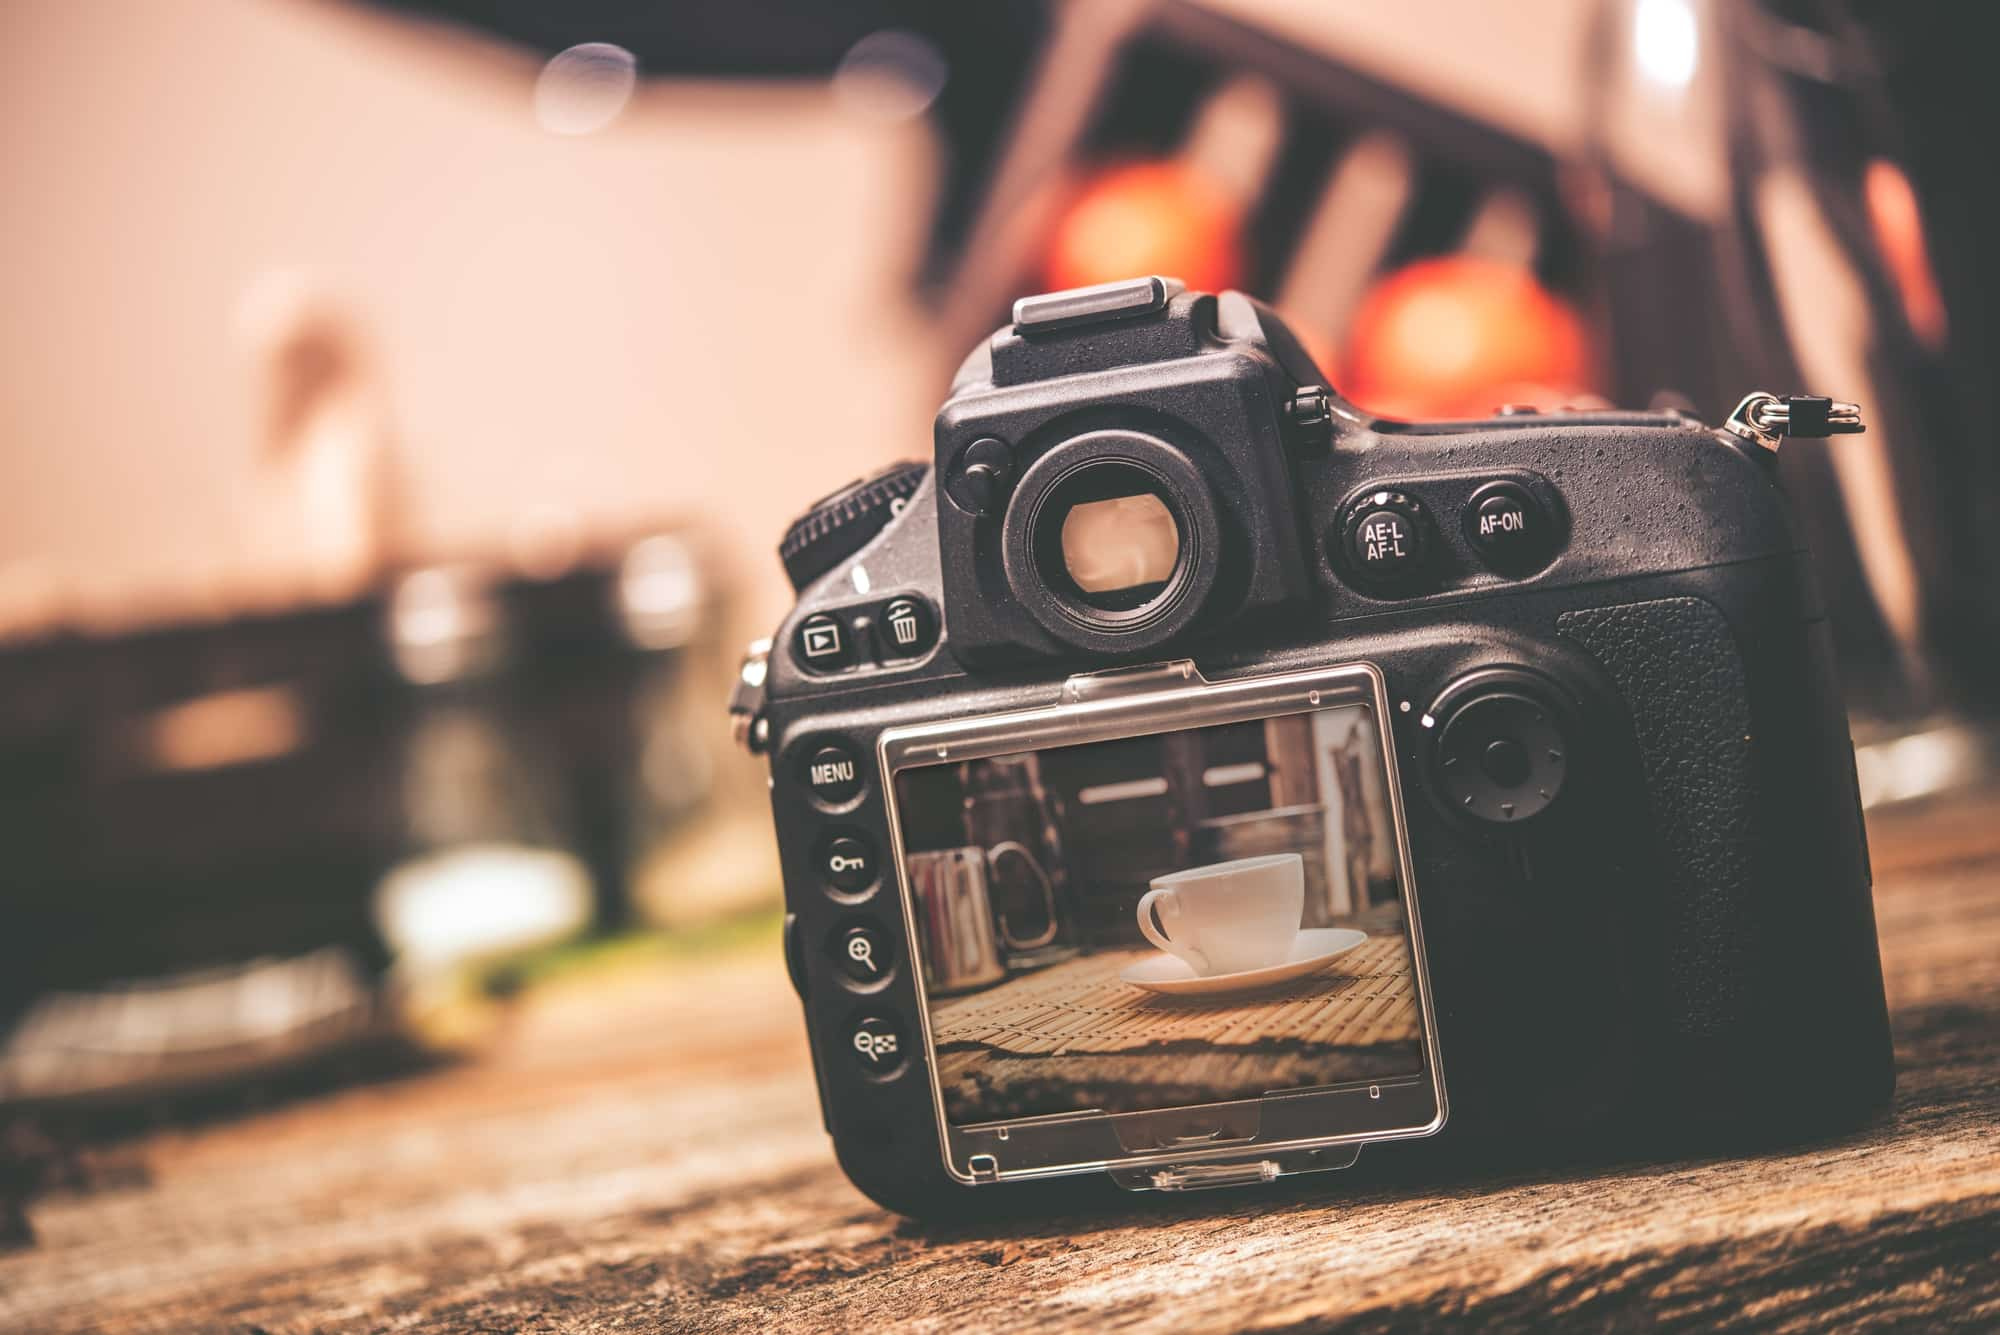 photography course udemy